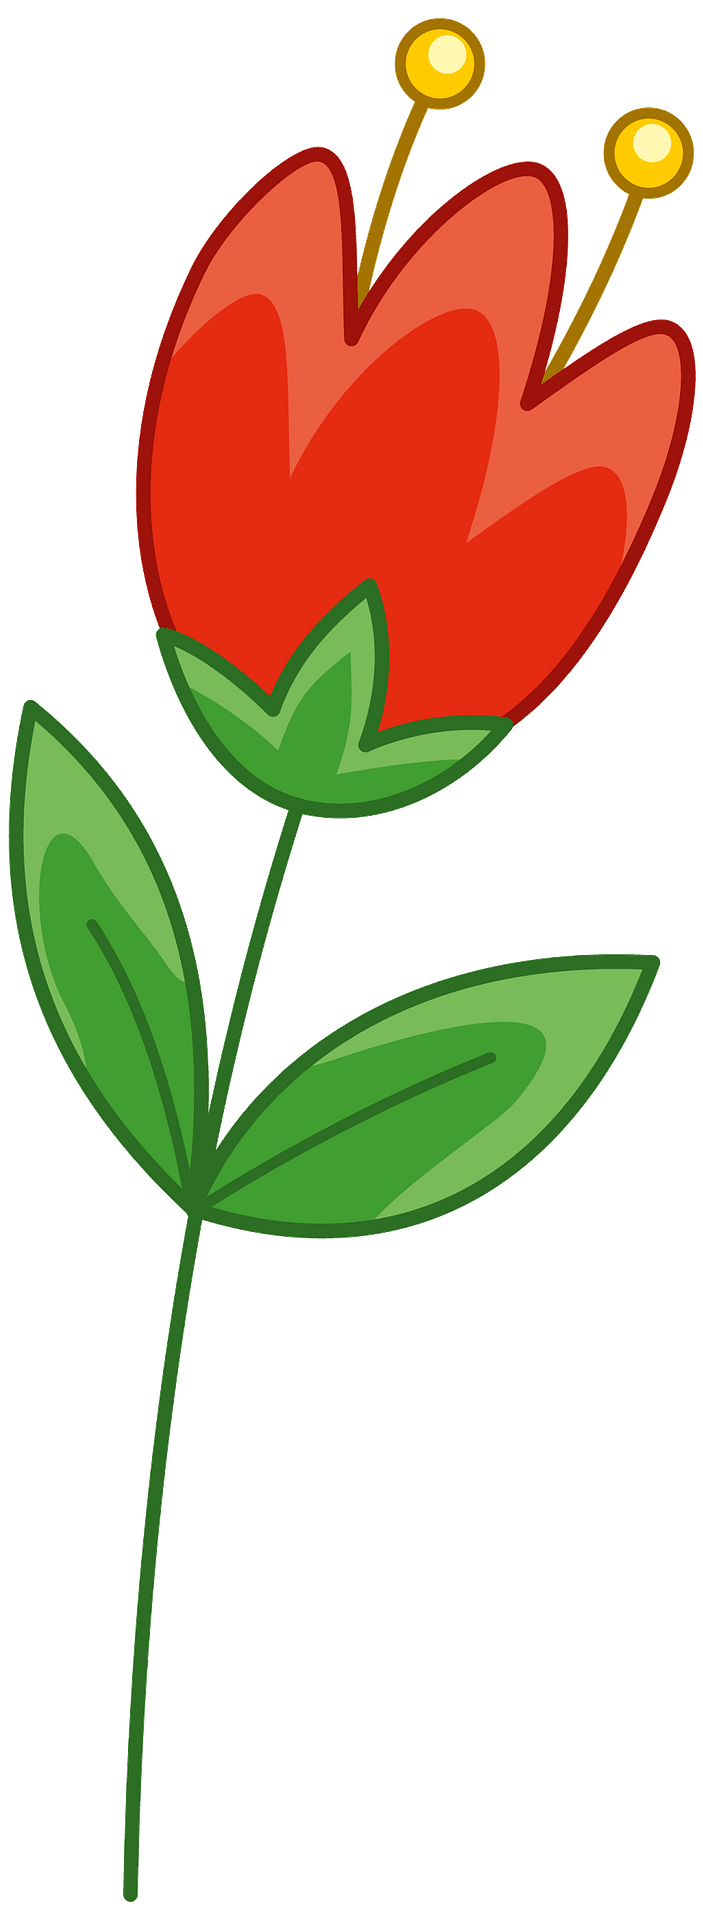 Red flower clipart. Free download..